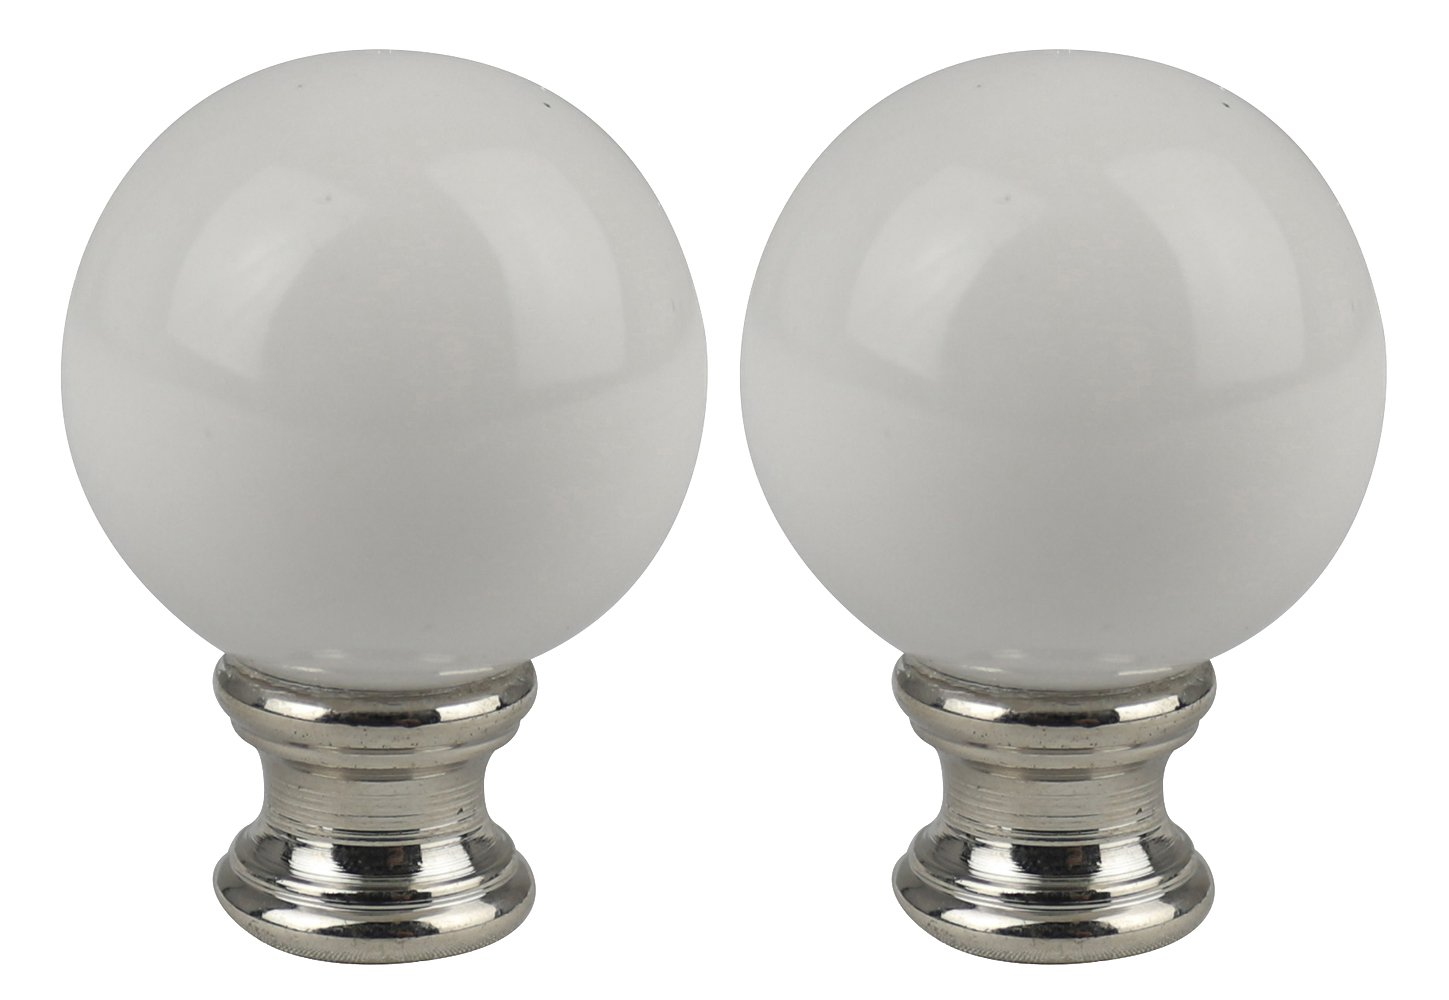 Urbanest Set of 2 Ceramic Ball Lamp Finials, 2-inch Tall, White